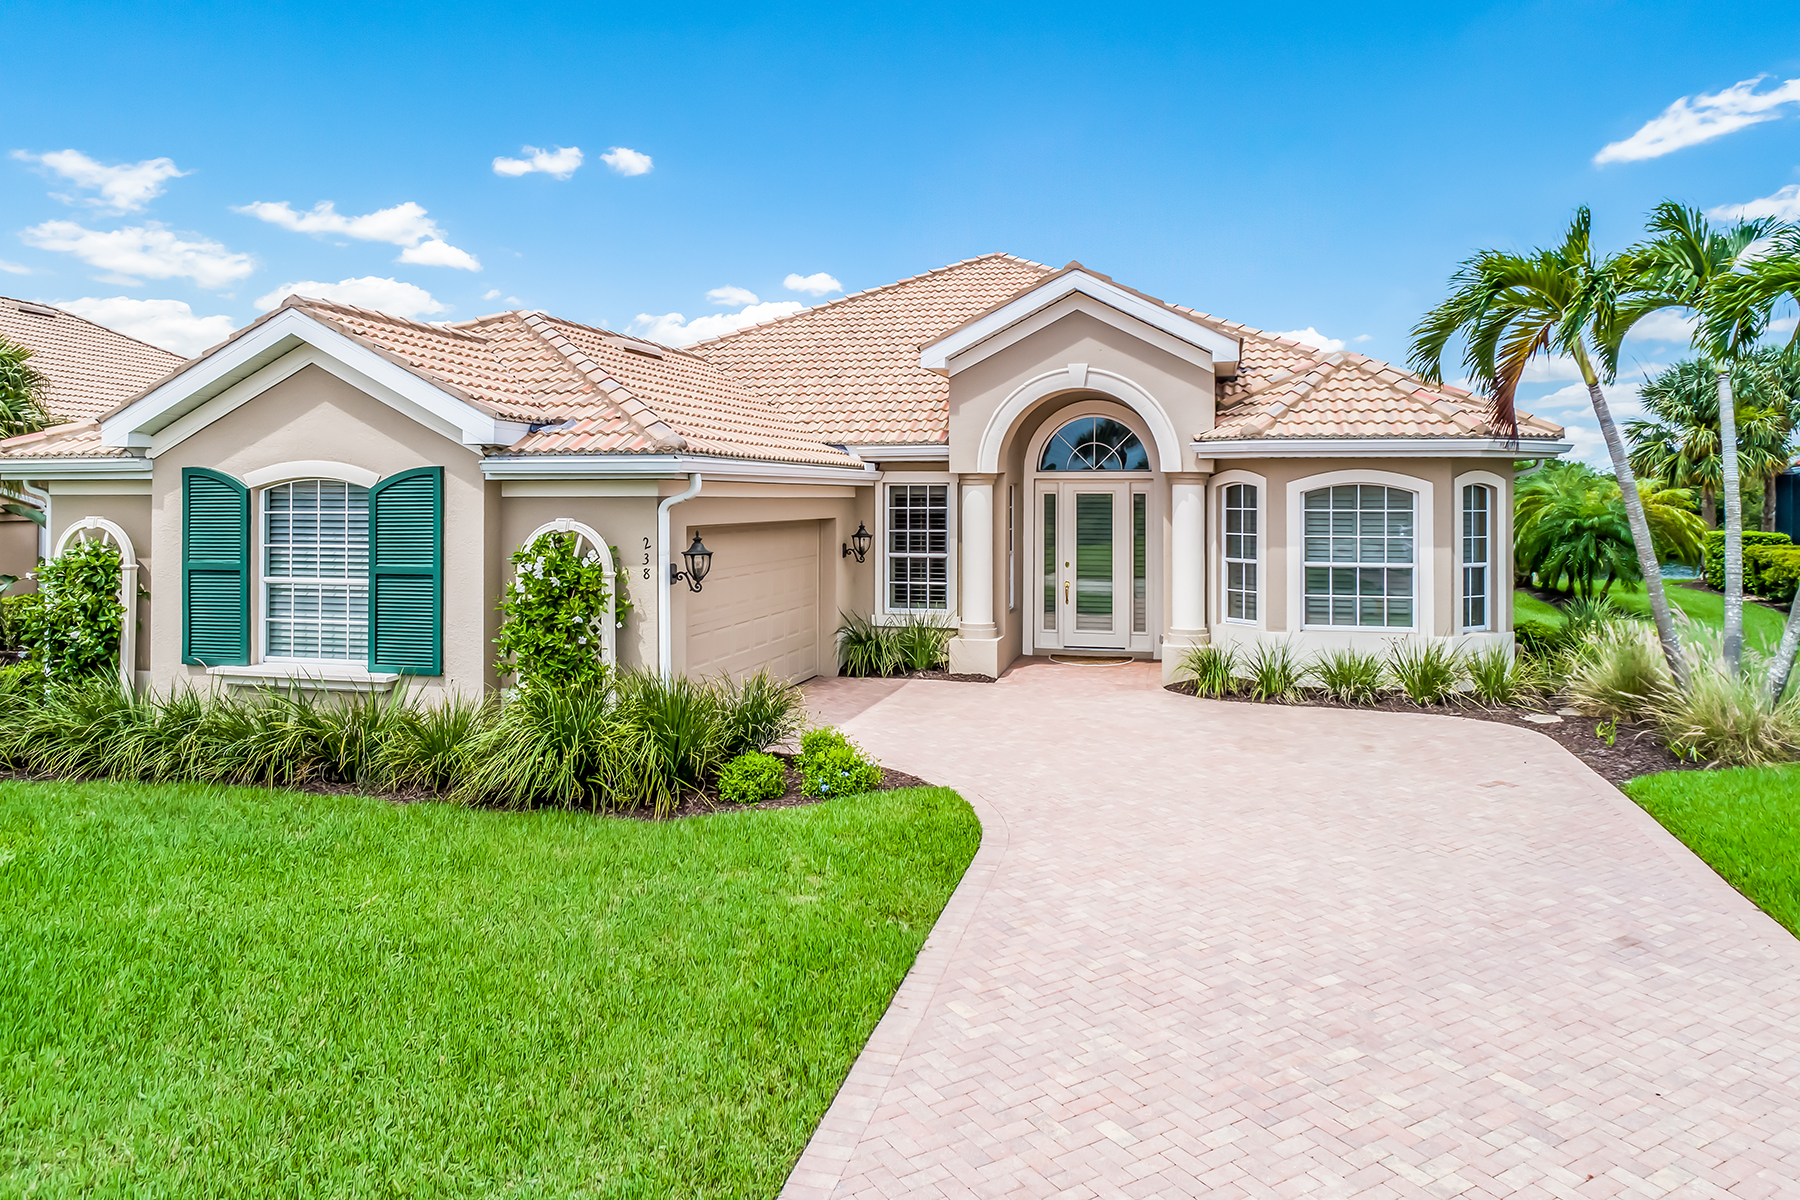 Single Family Homes for Sale at VENETIAN GOLF & RIVER CLUB 238 Montelluna Dr North Venice, Florida 34275 United States